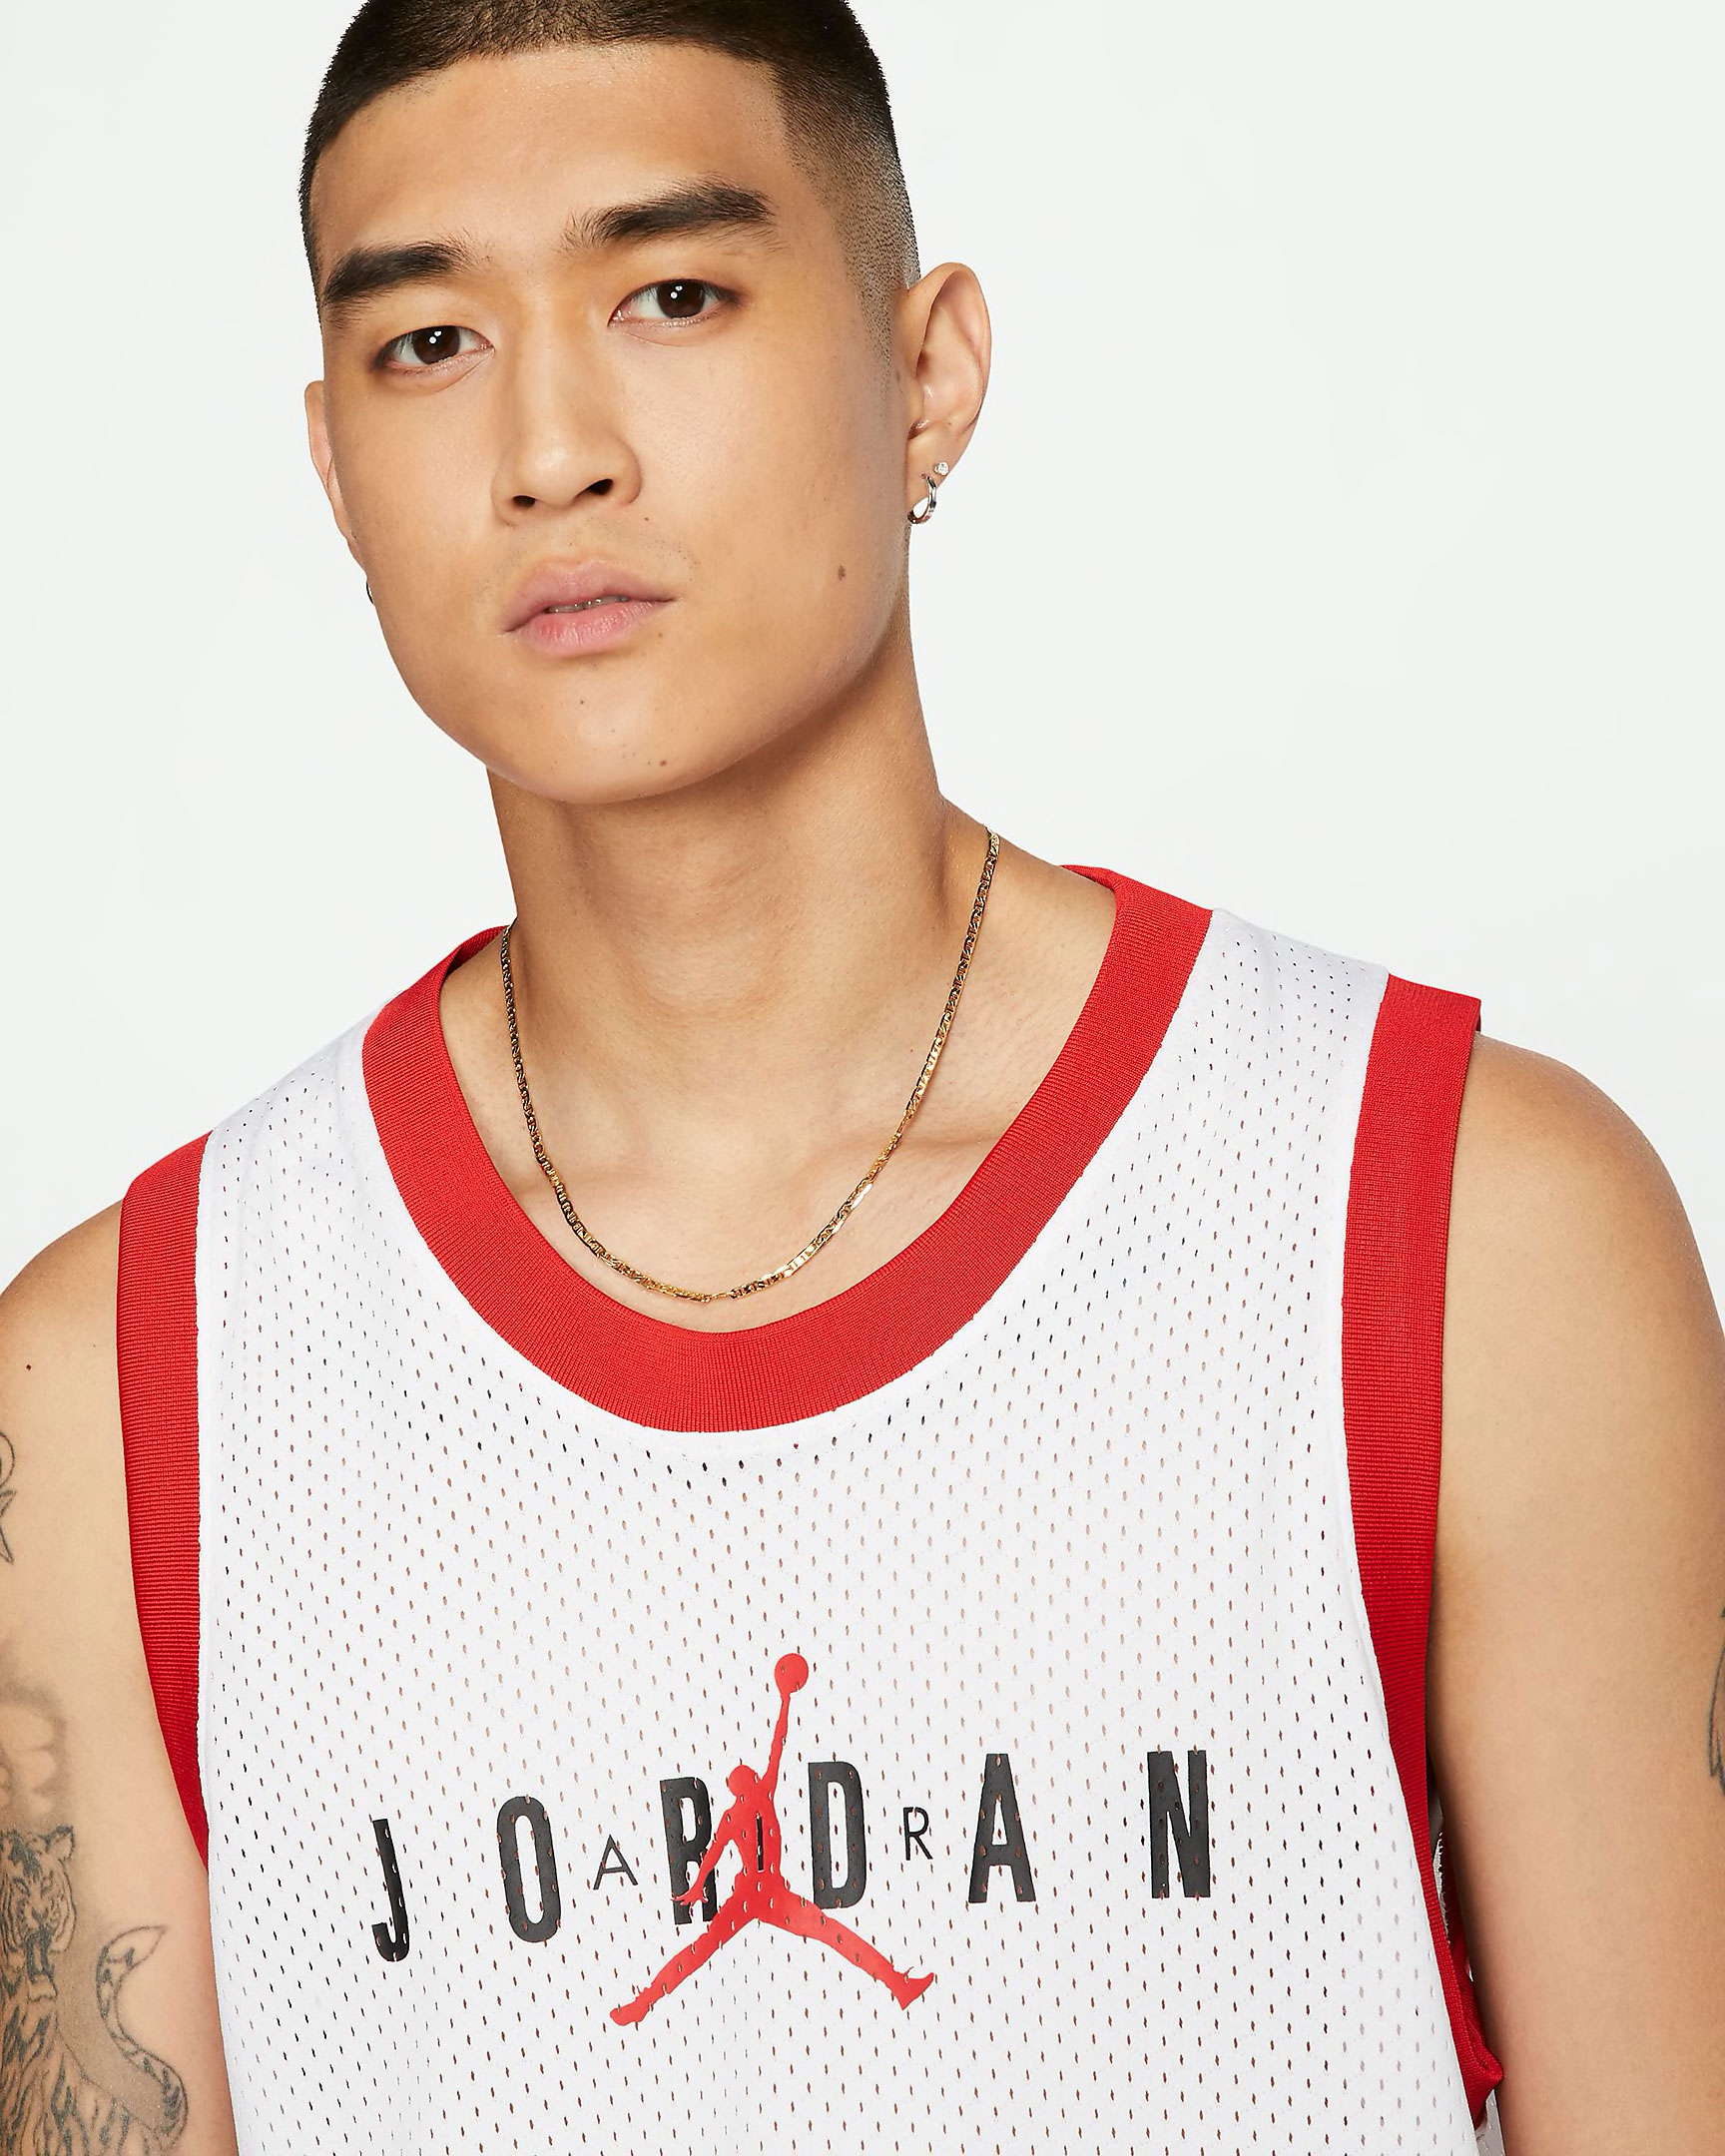 jordan-sport-dna-tank-top-white-red-2